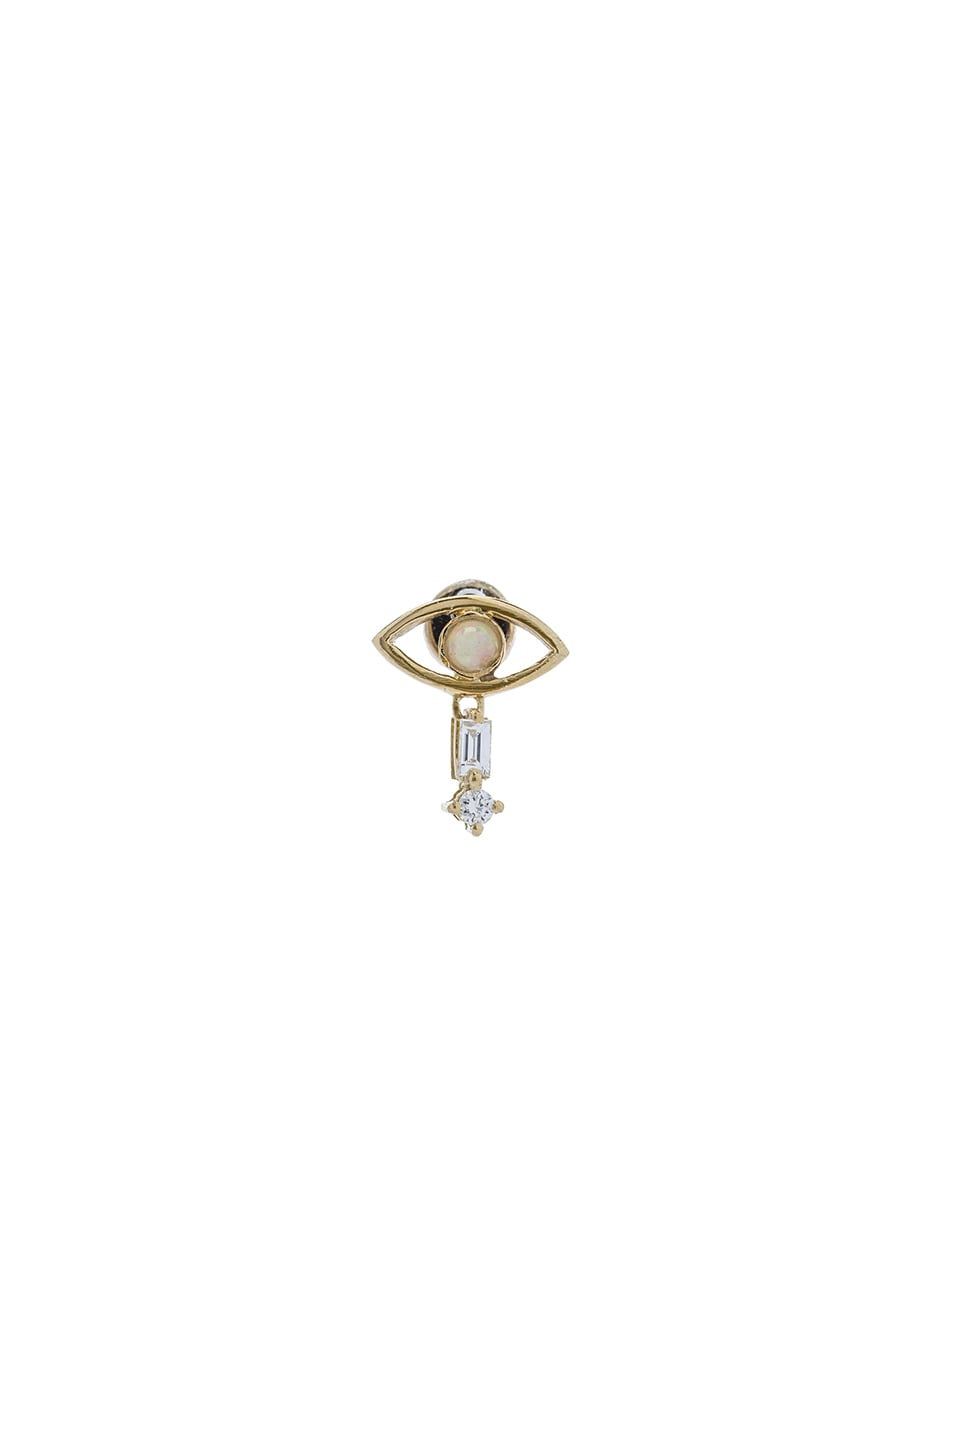 Image 1 of Ileana Makri Tiny Single Eye Stud Earring in Yellow Gold & Opal